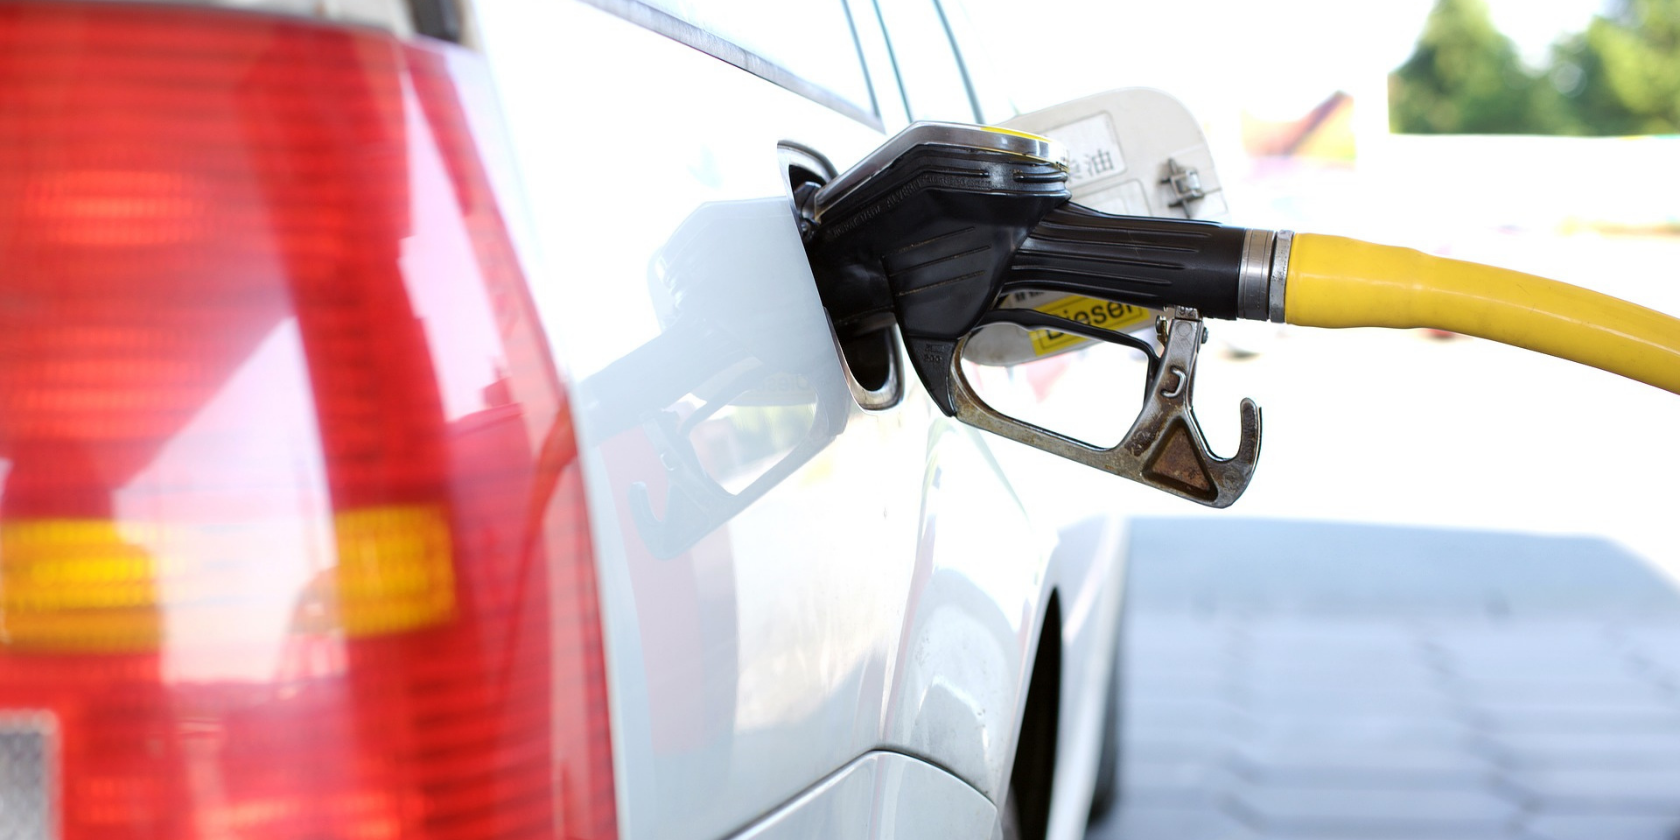 The 6 Best Apps to Help You Find Cheap Gas